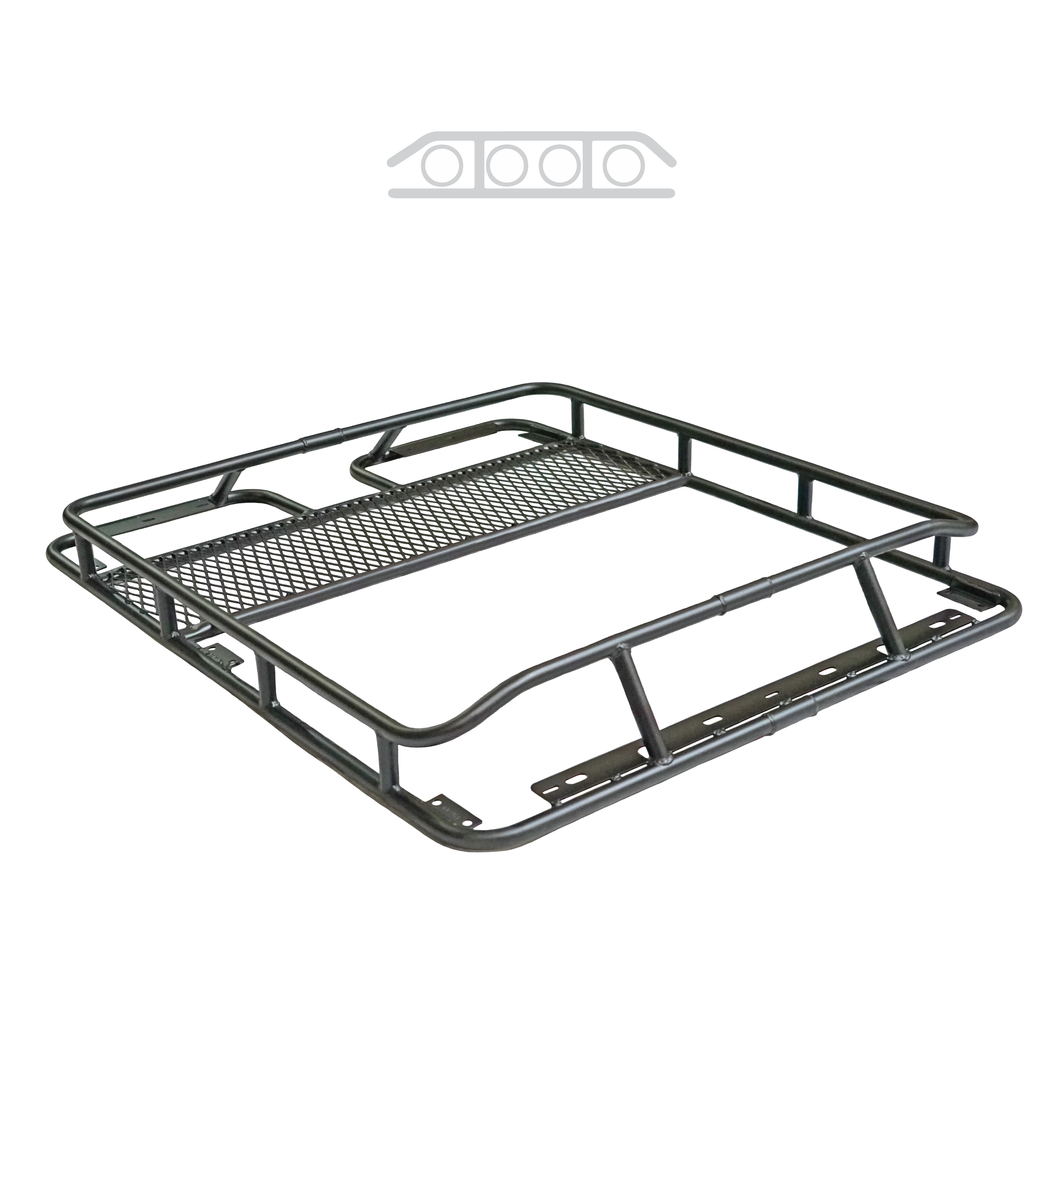 Toyota Tacoma Ranger Rack Multi Light Setup With